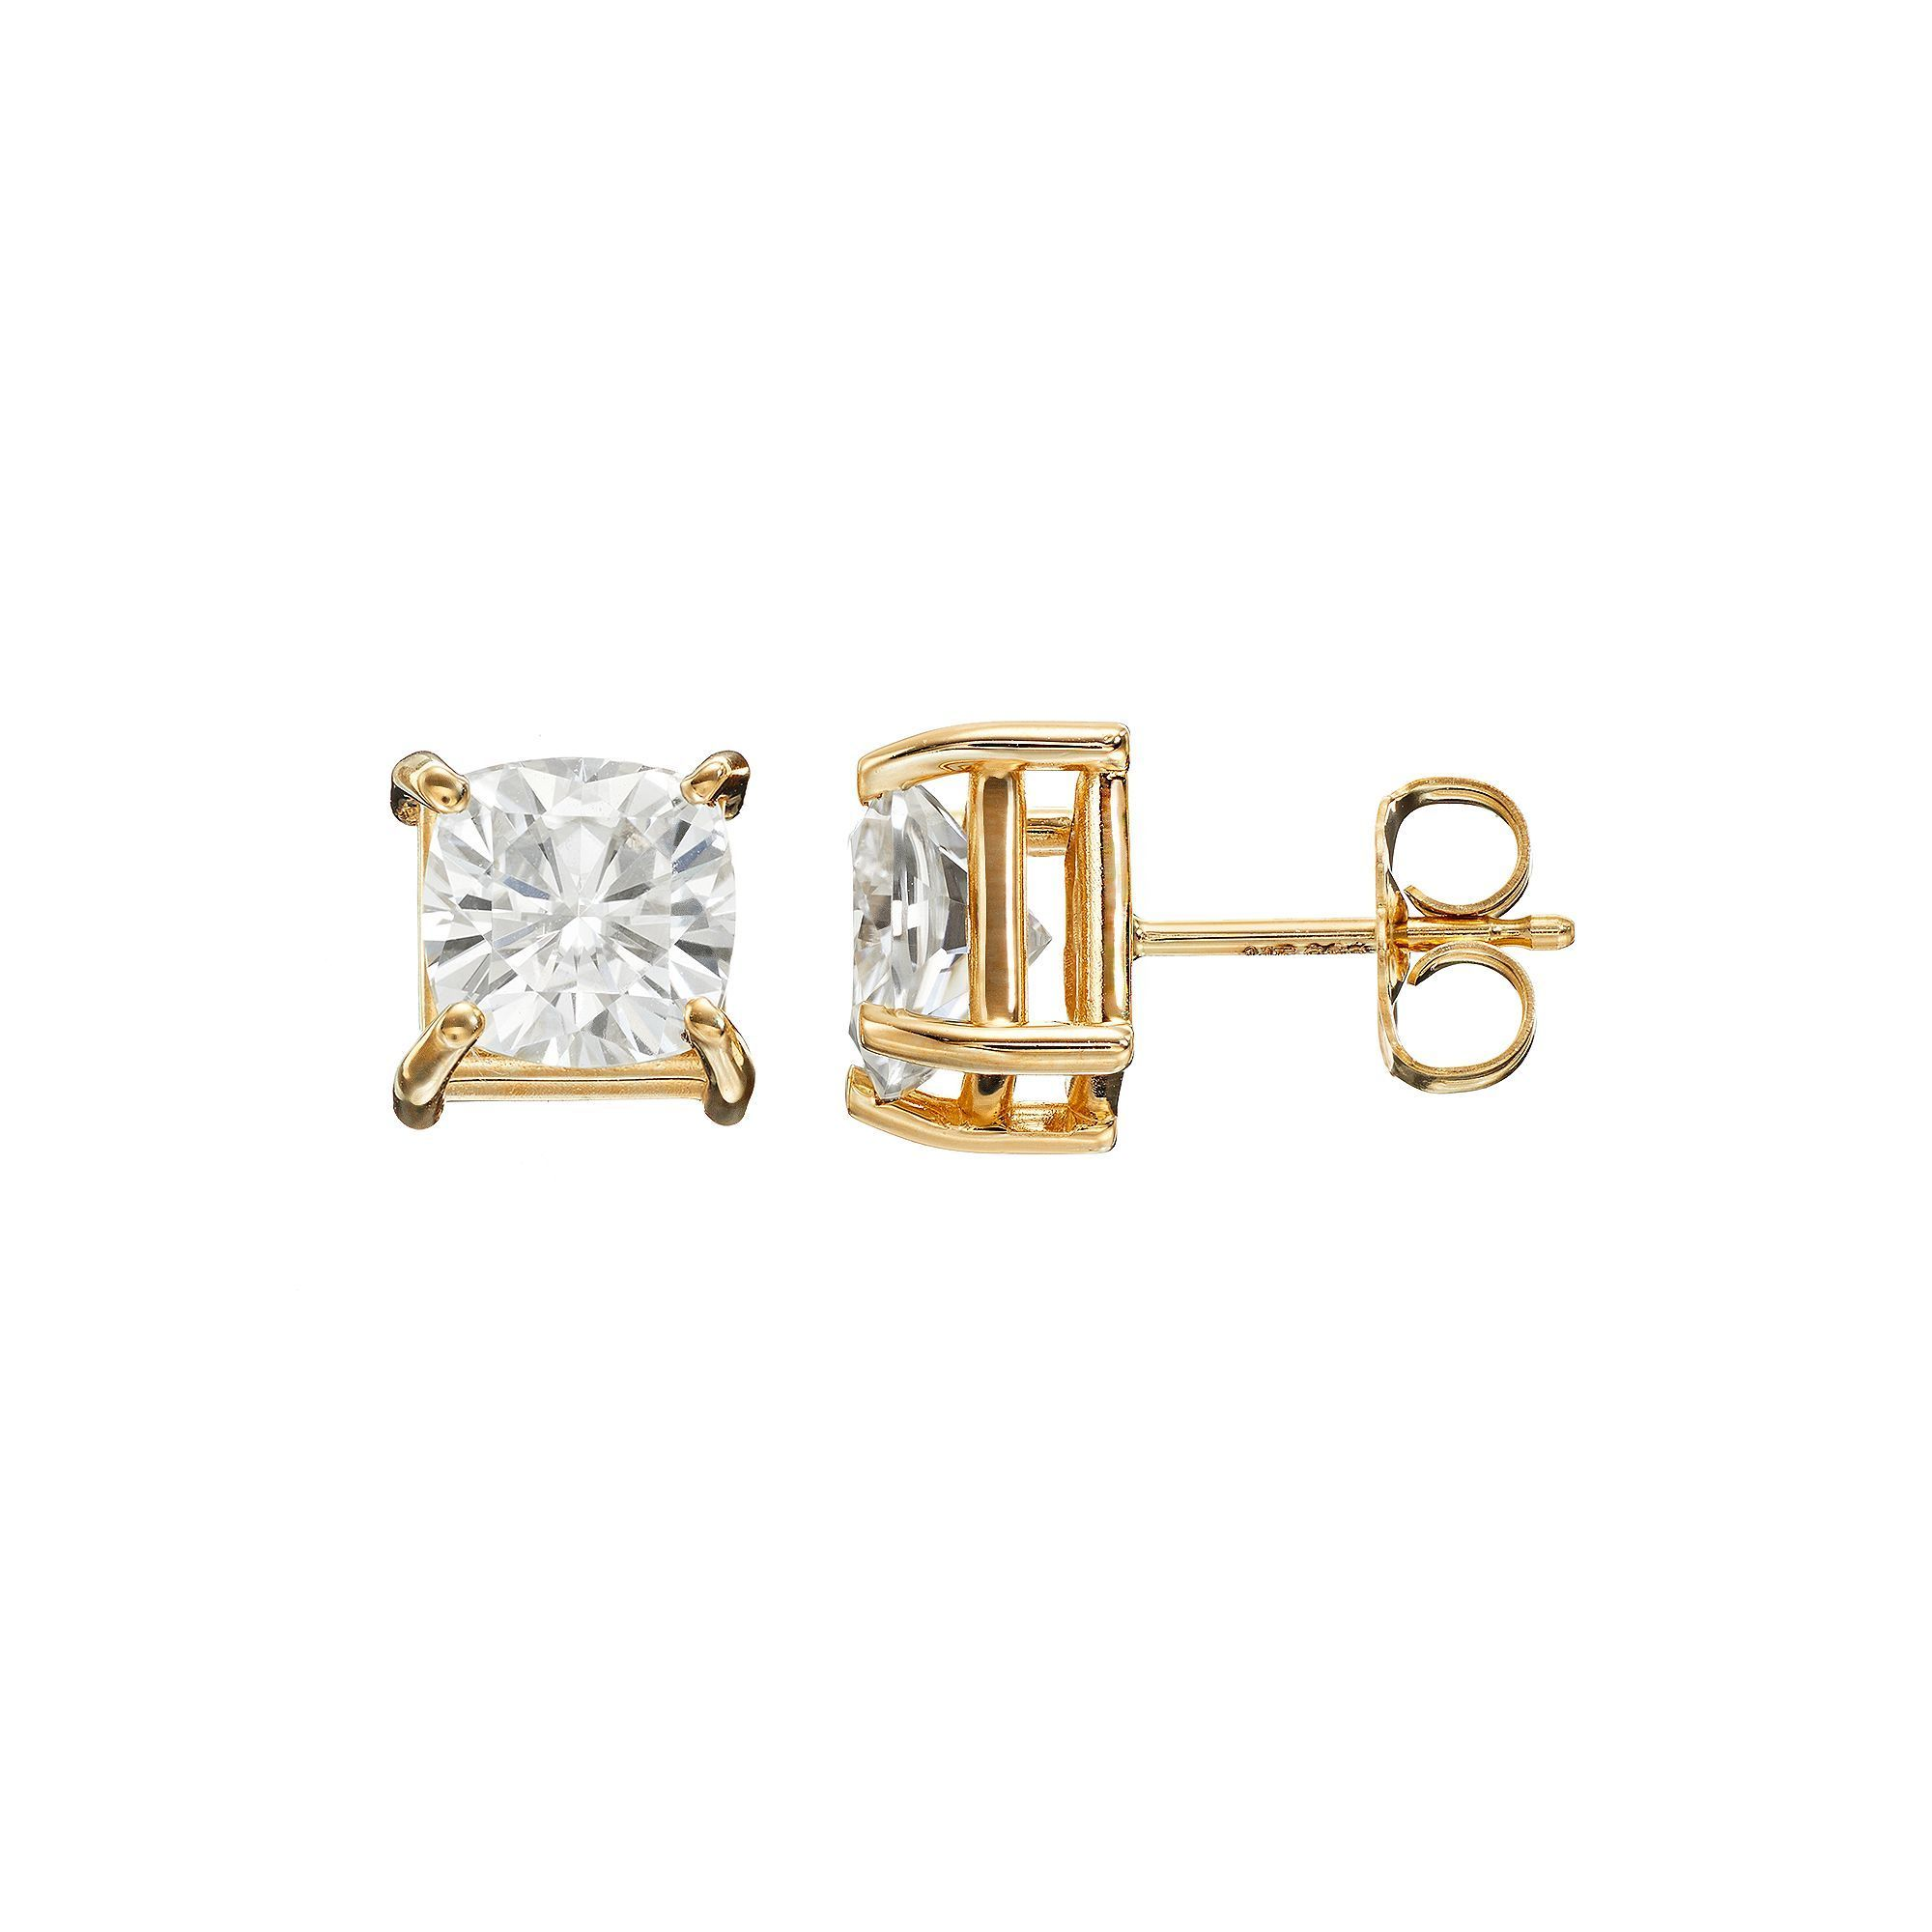 fleur products earrings moissanite premium cushion earring lis fine de moissy jewellery